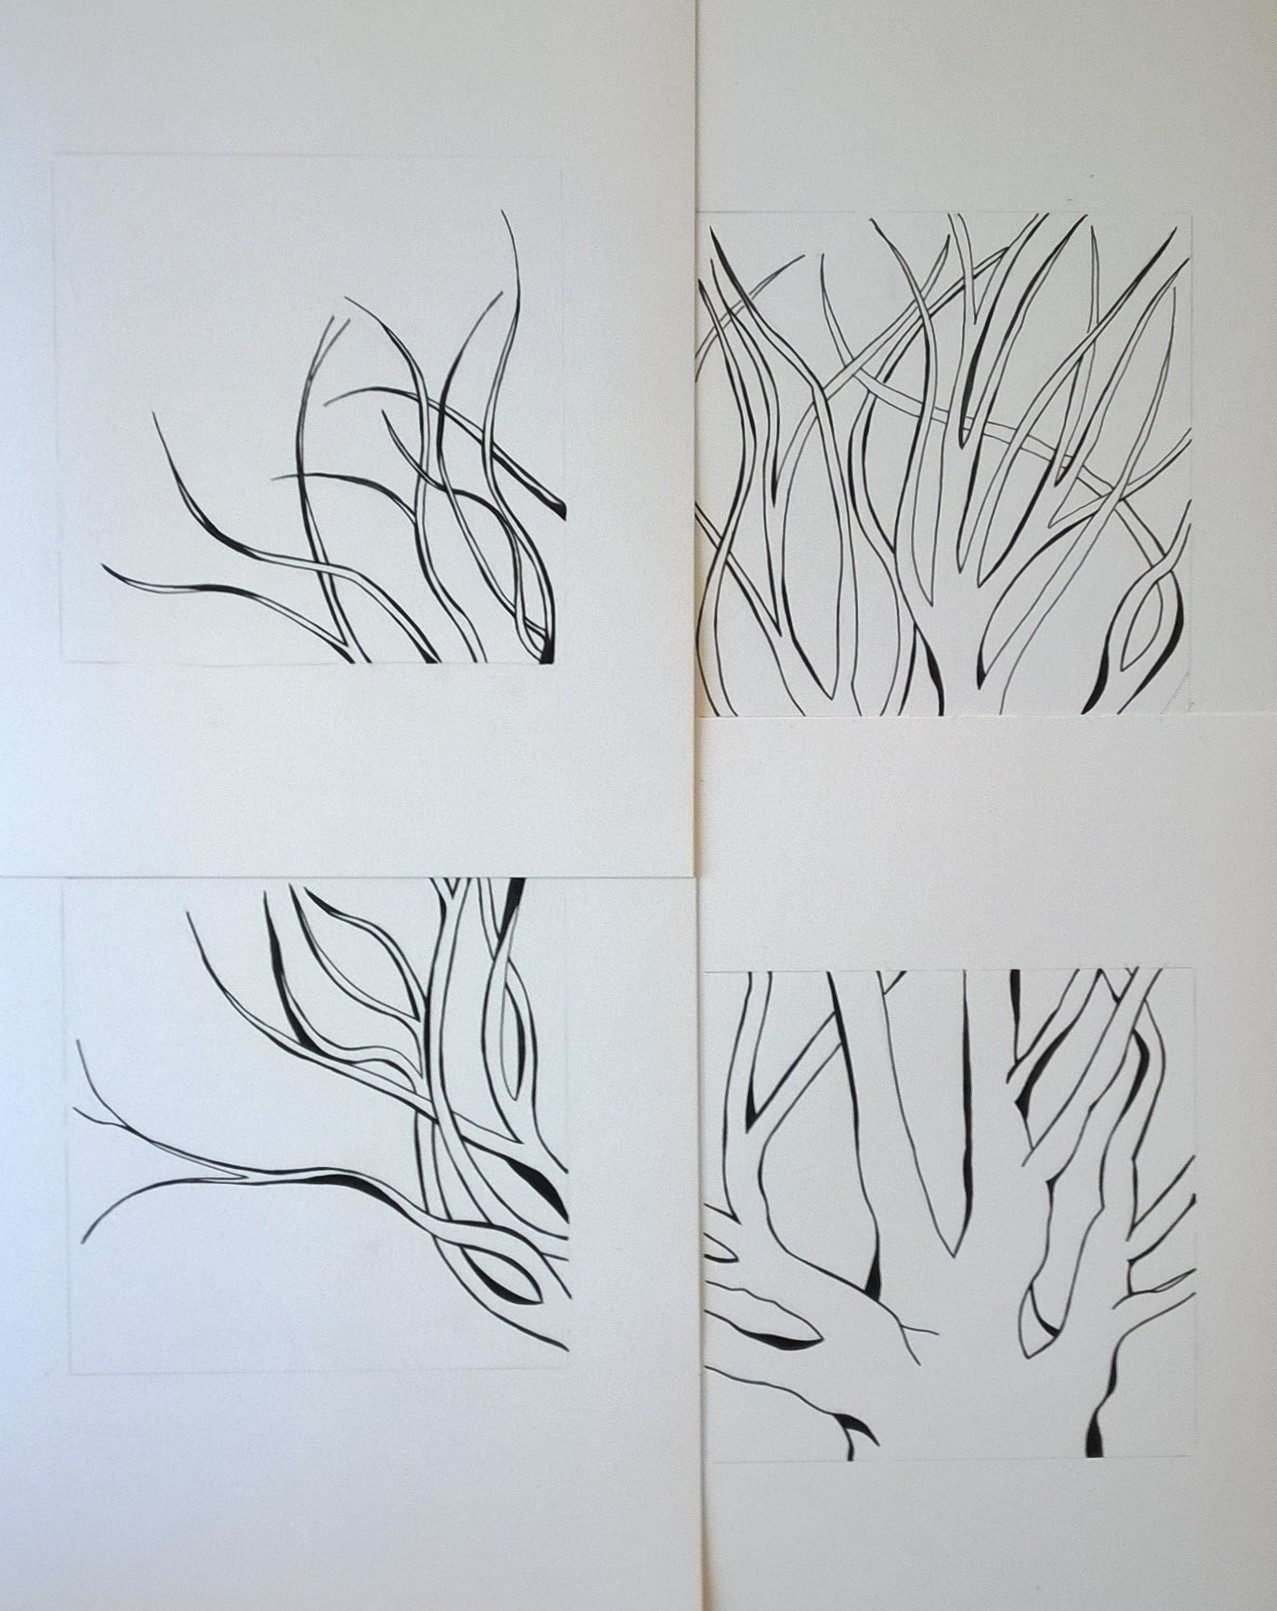 Figure 4: Drawings presented as one piece. When finished, they would share a single mat with 4 openings and be framed as one.